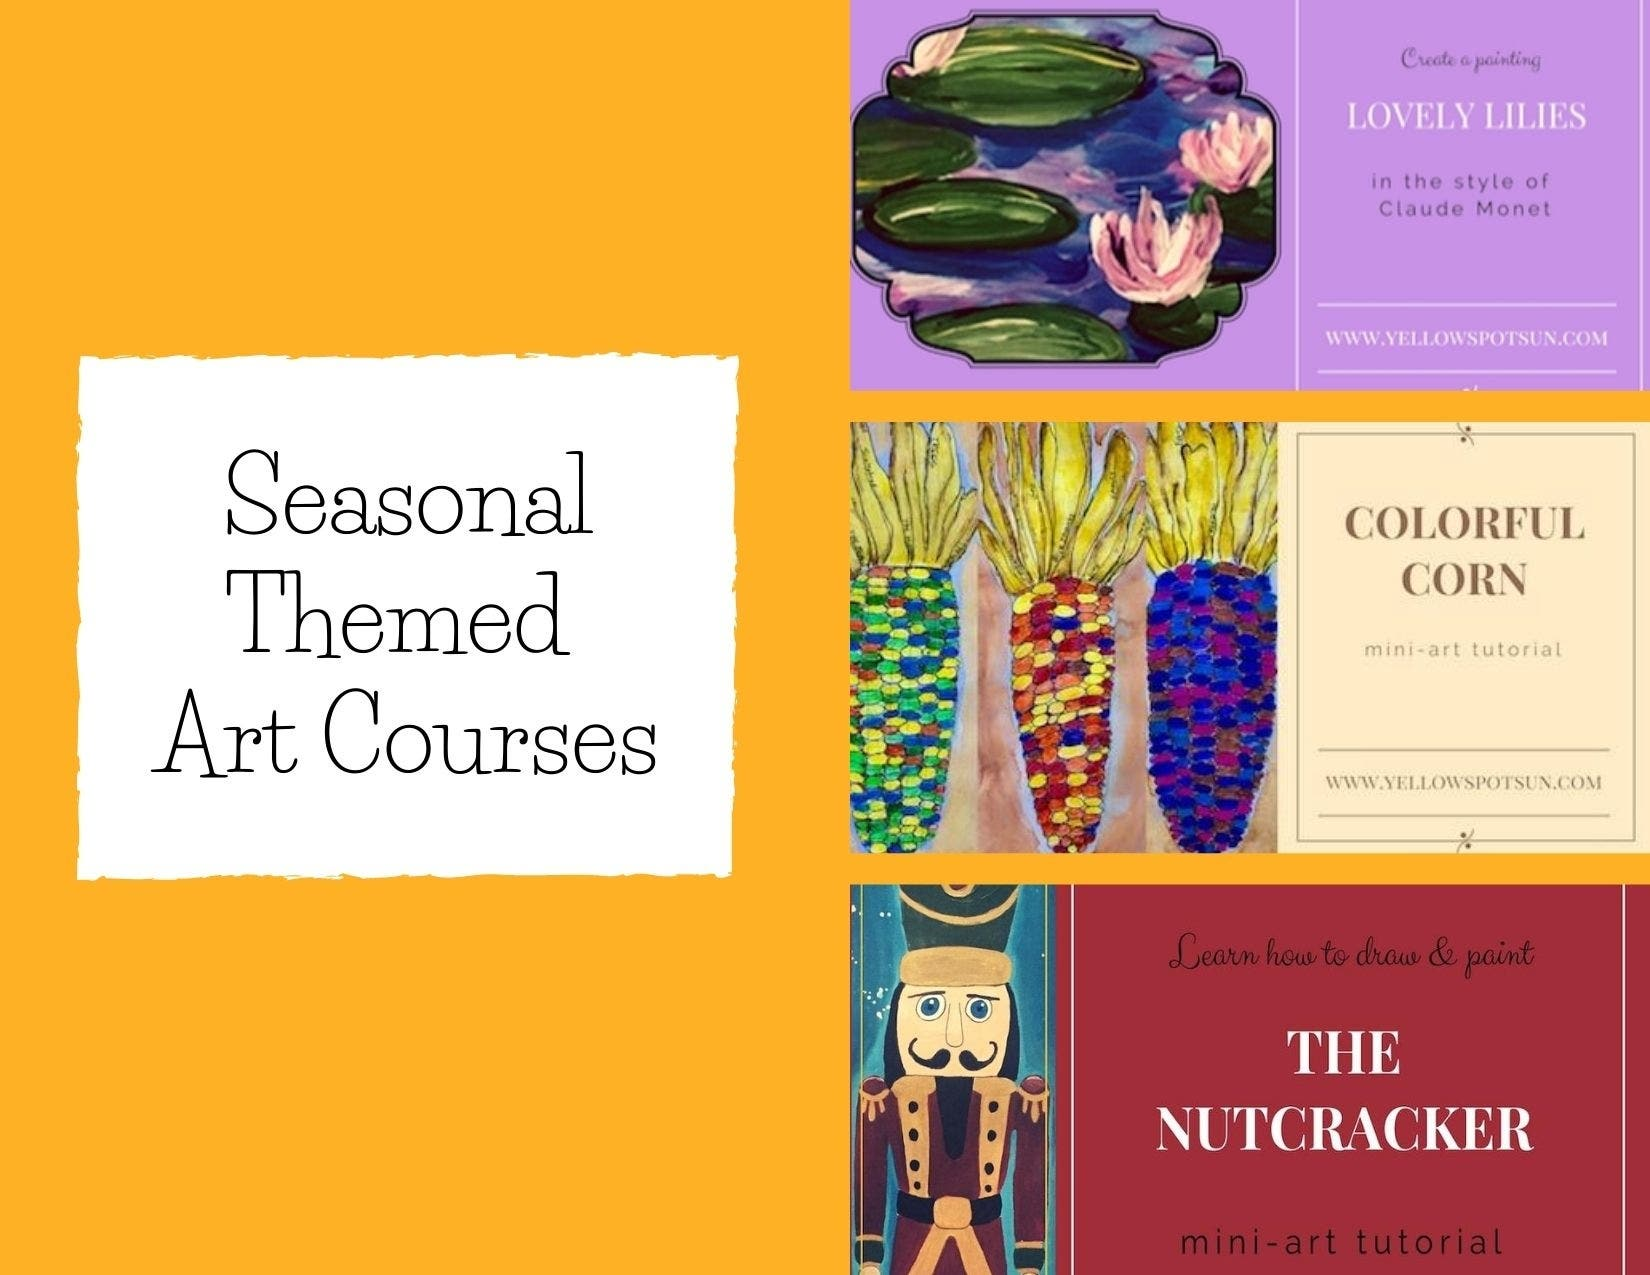 Seasonal Themed Art Courses